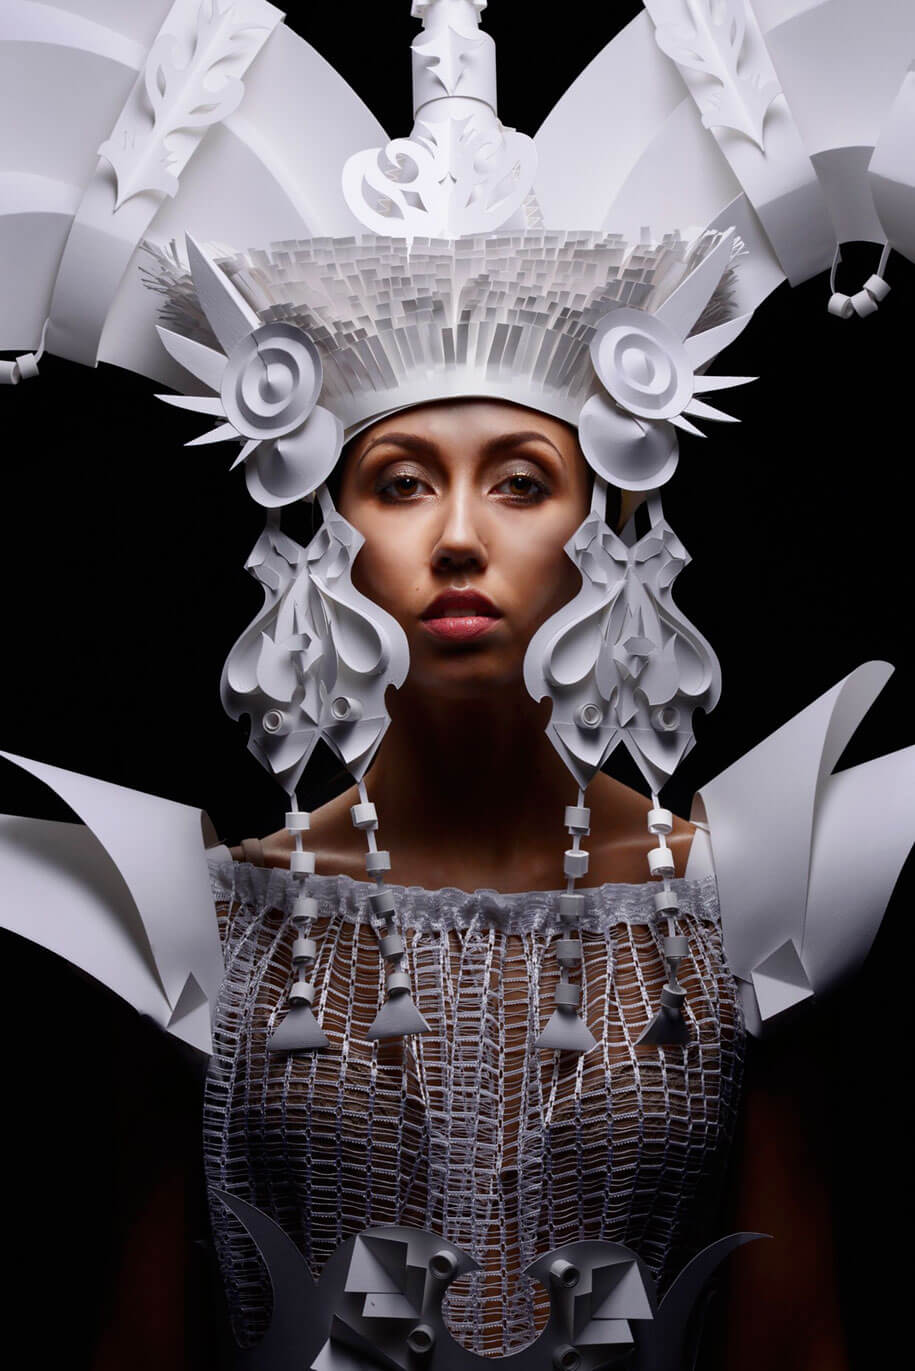 Russian Artist Creates Classical Baroque Wigs Out Of Paper -paper-art, paper, fashion